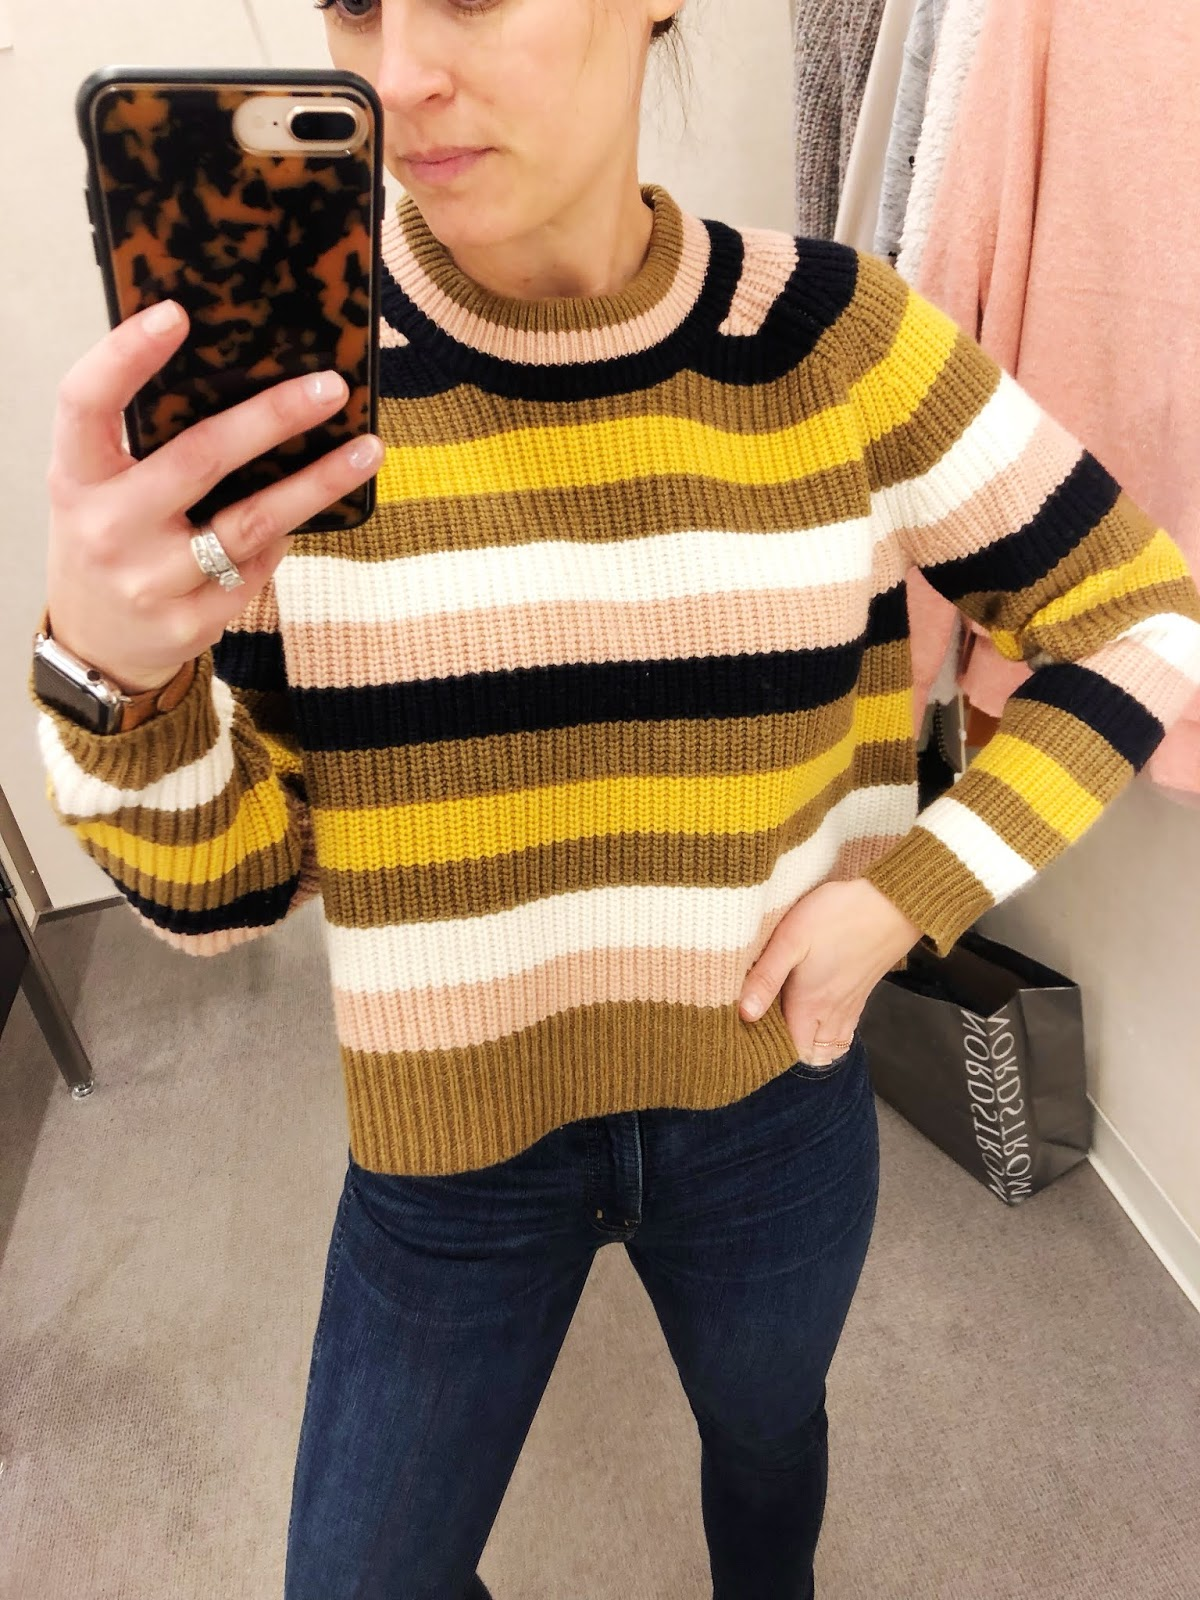 2dae8b6ec26 above  Okay now that I see this sweater again I am KICKING myself for not  buying it. I love the slightly cropped and boxy fit with high waisted  skinny jeans ...